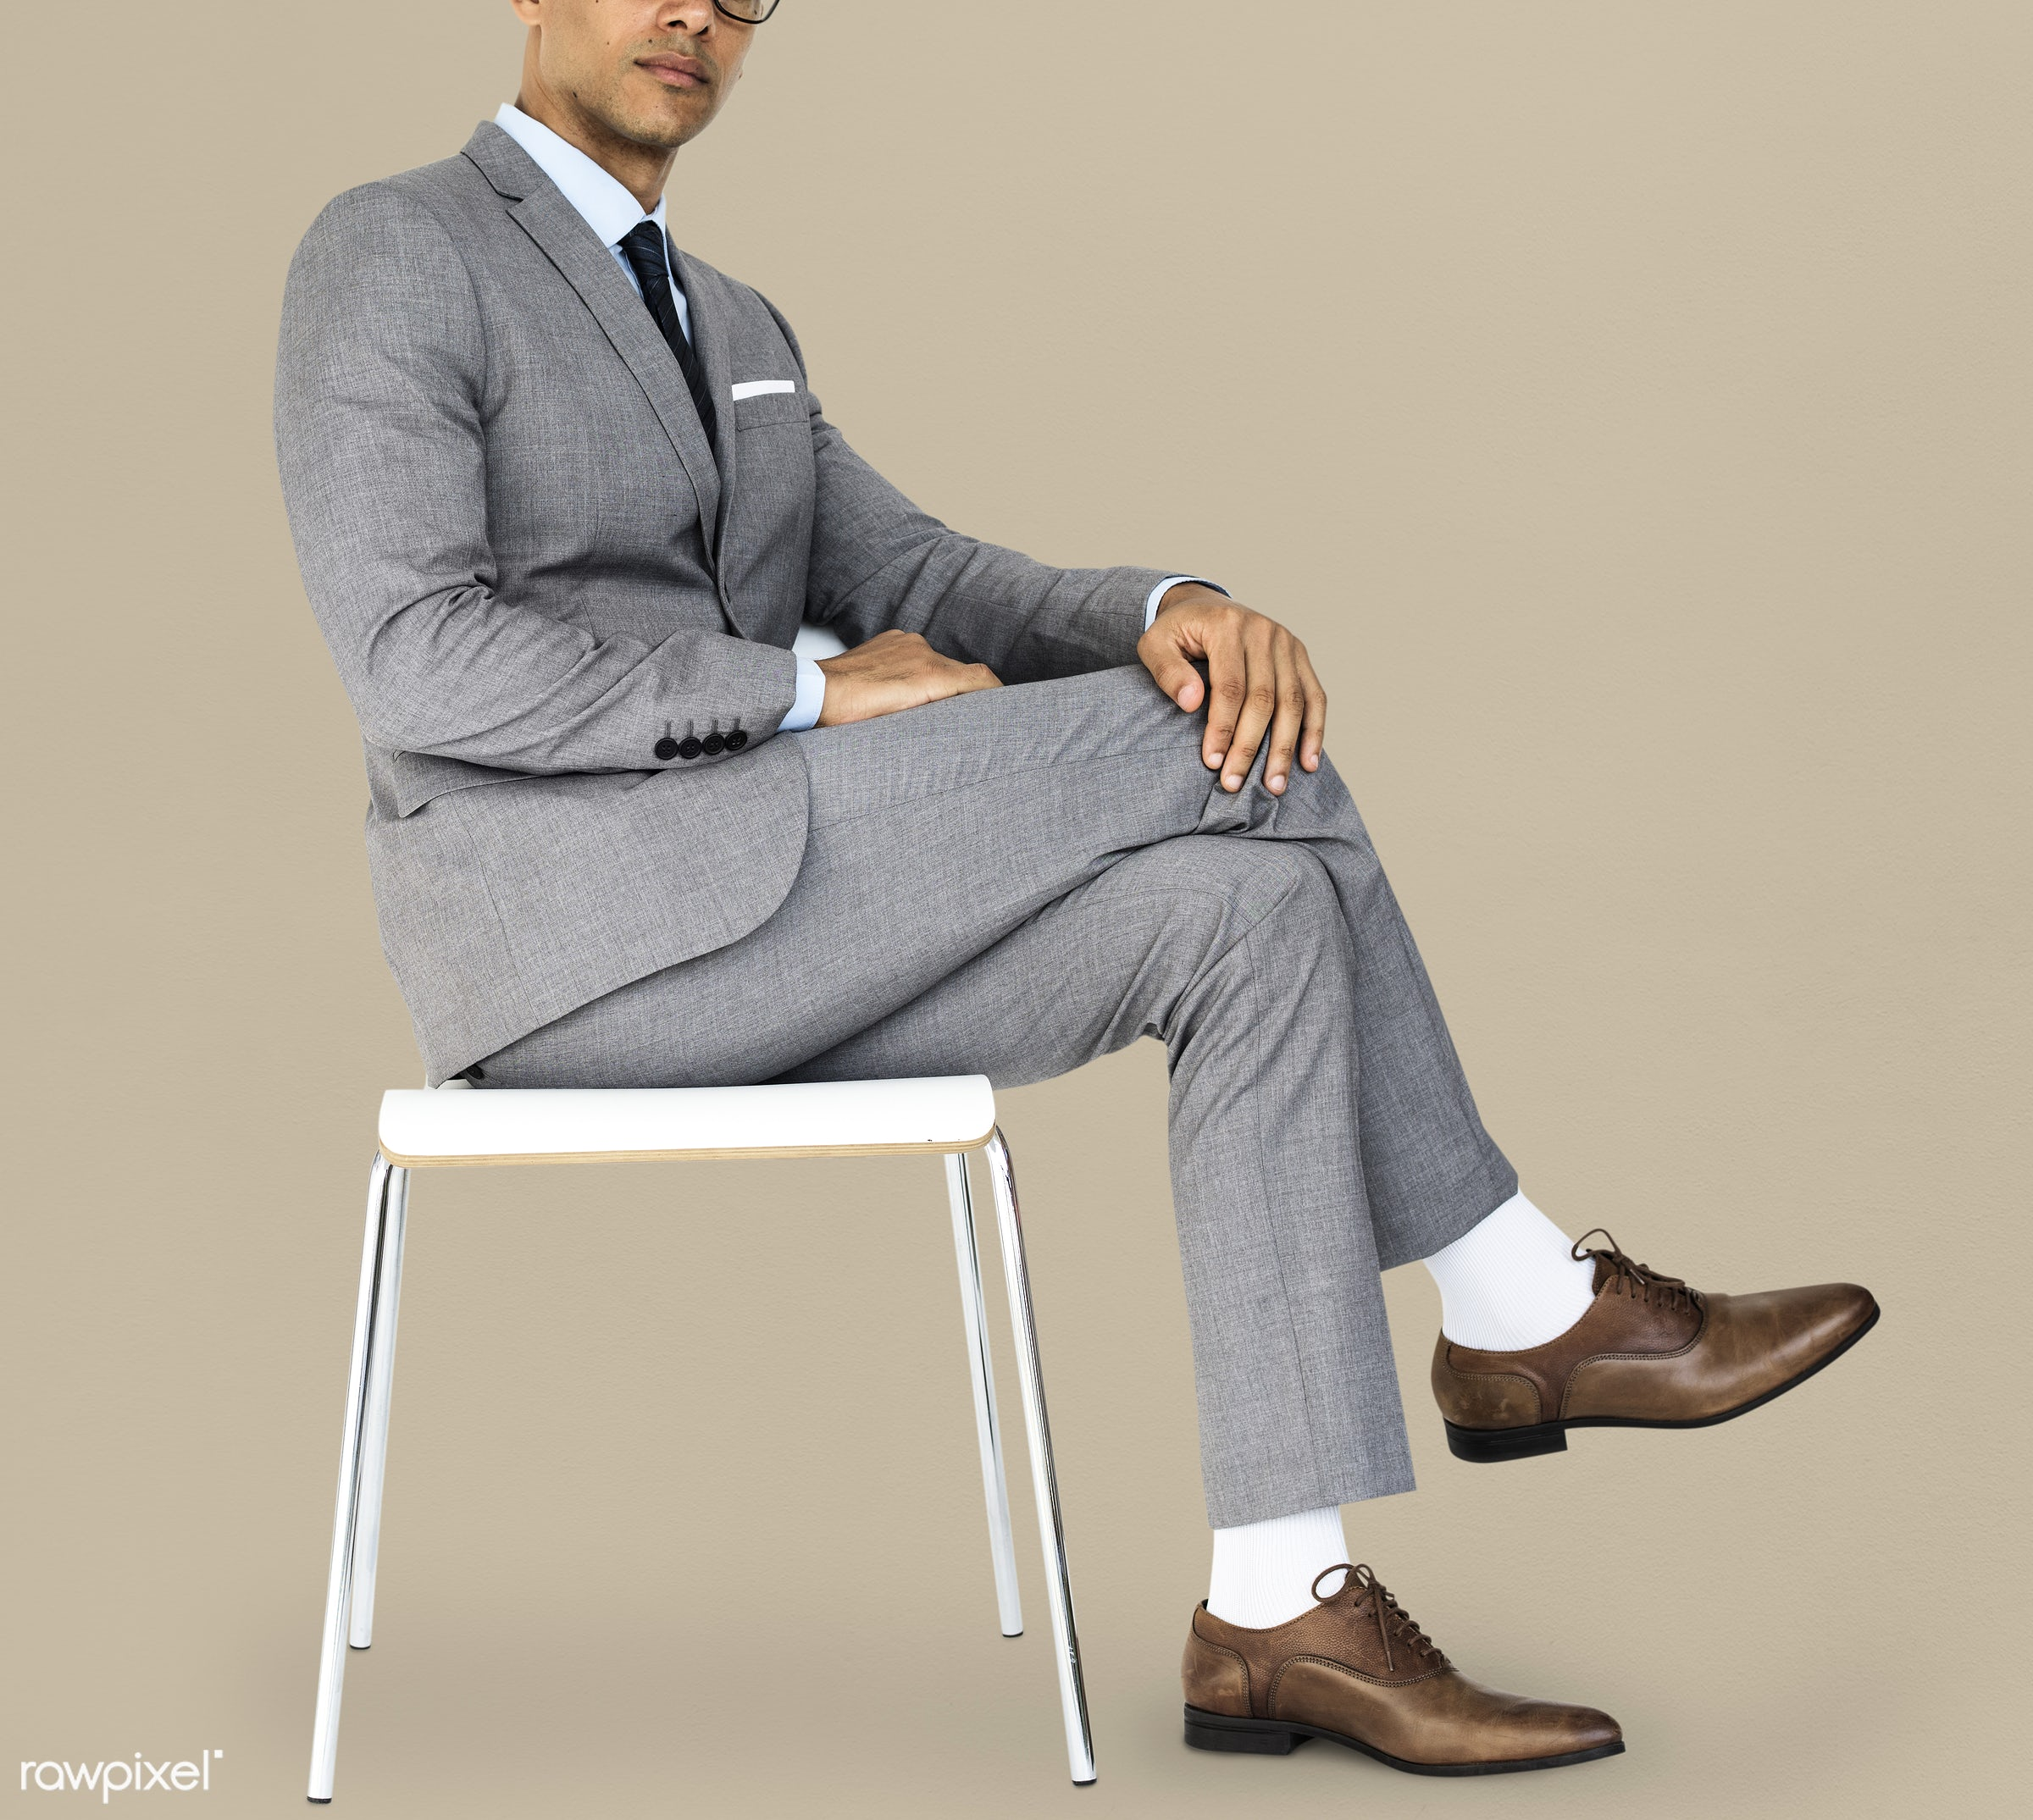 studio, expression, face, person, glasses, courage, carefree, people, business, businessman, fresh, casual, mixed race, man...